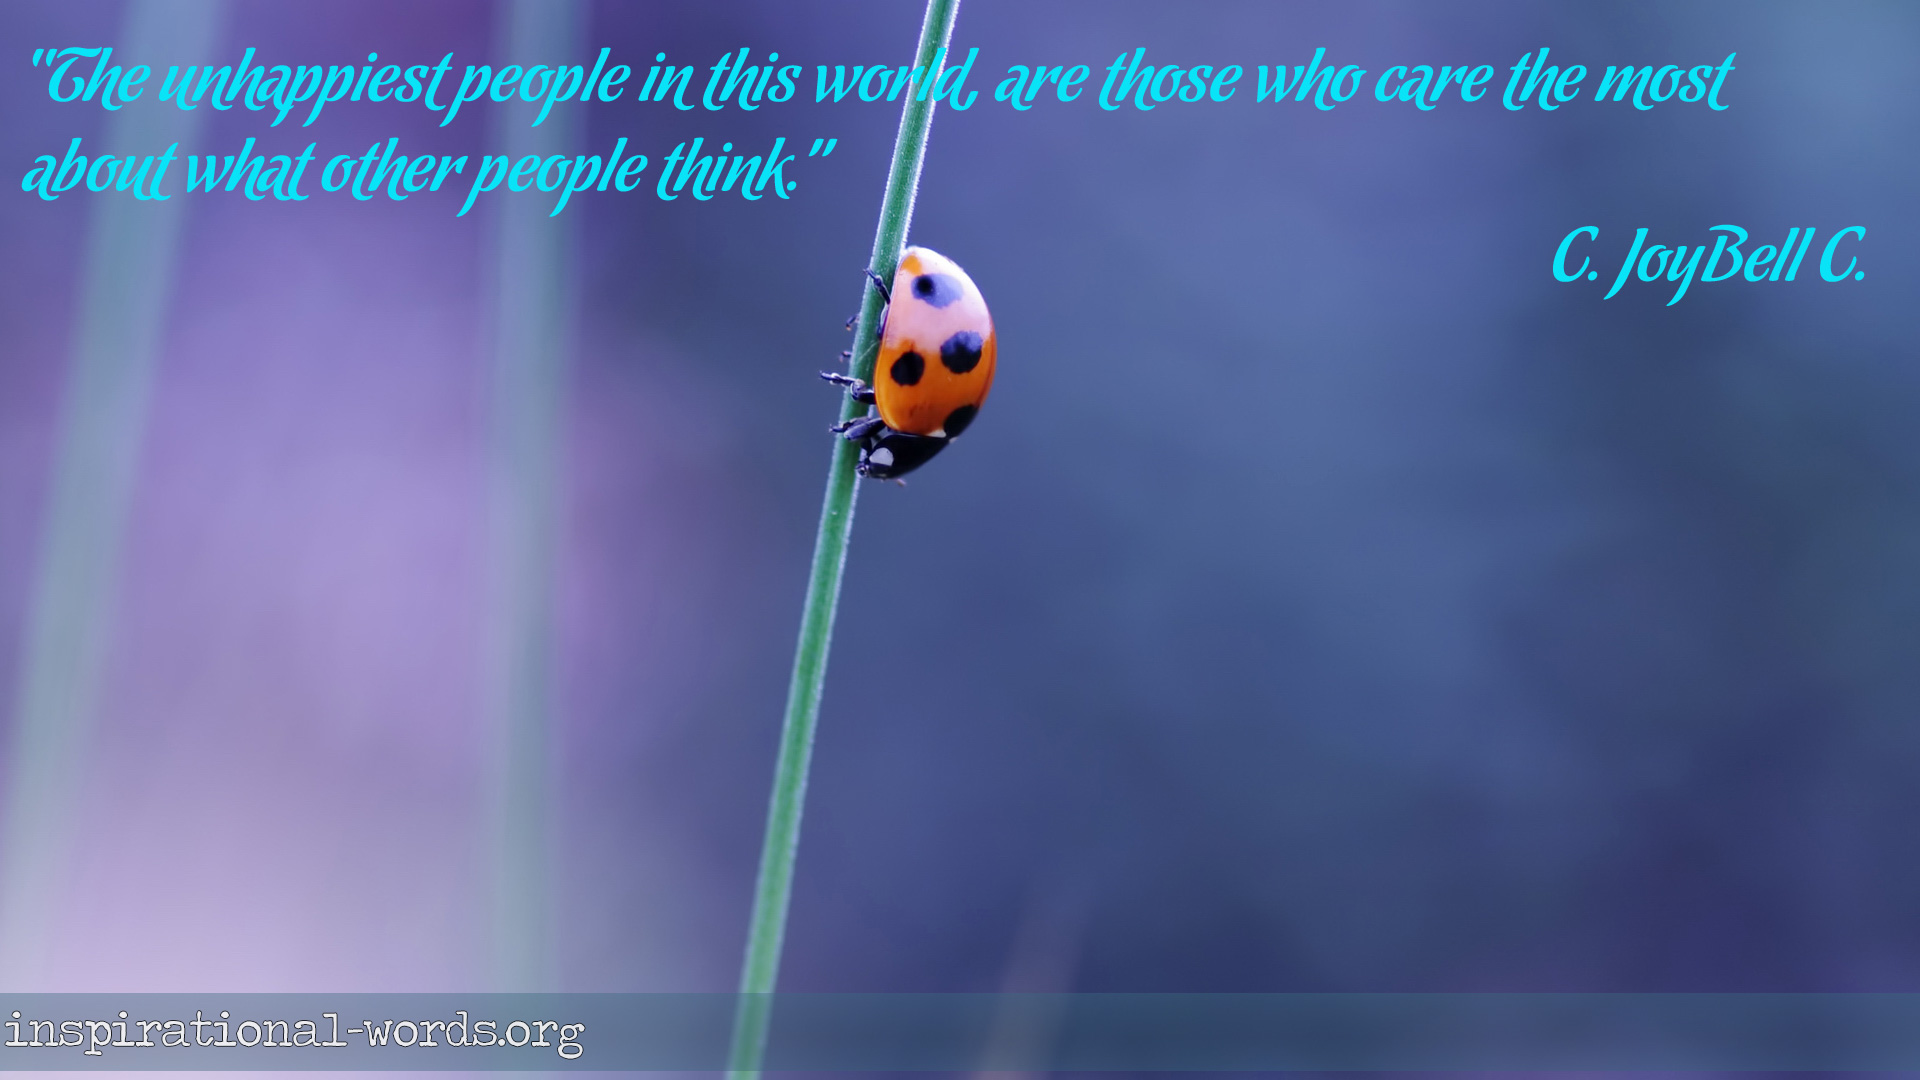 Inspirational Wallpaper Quote by C. JoyBell C.